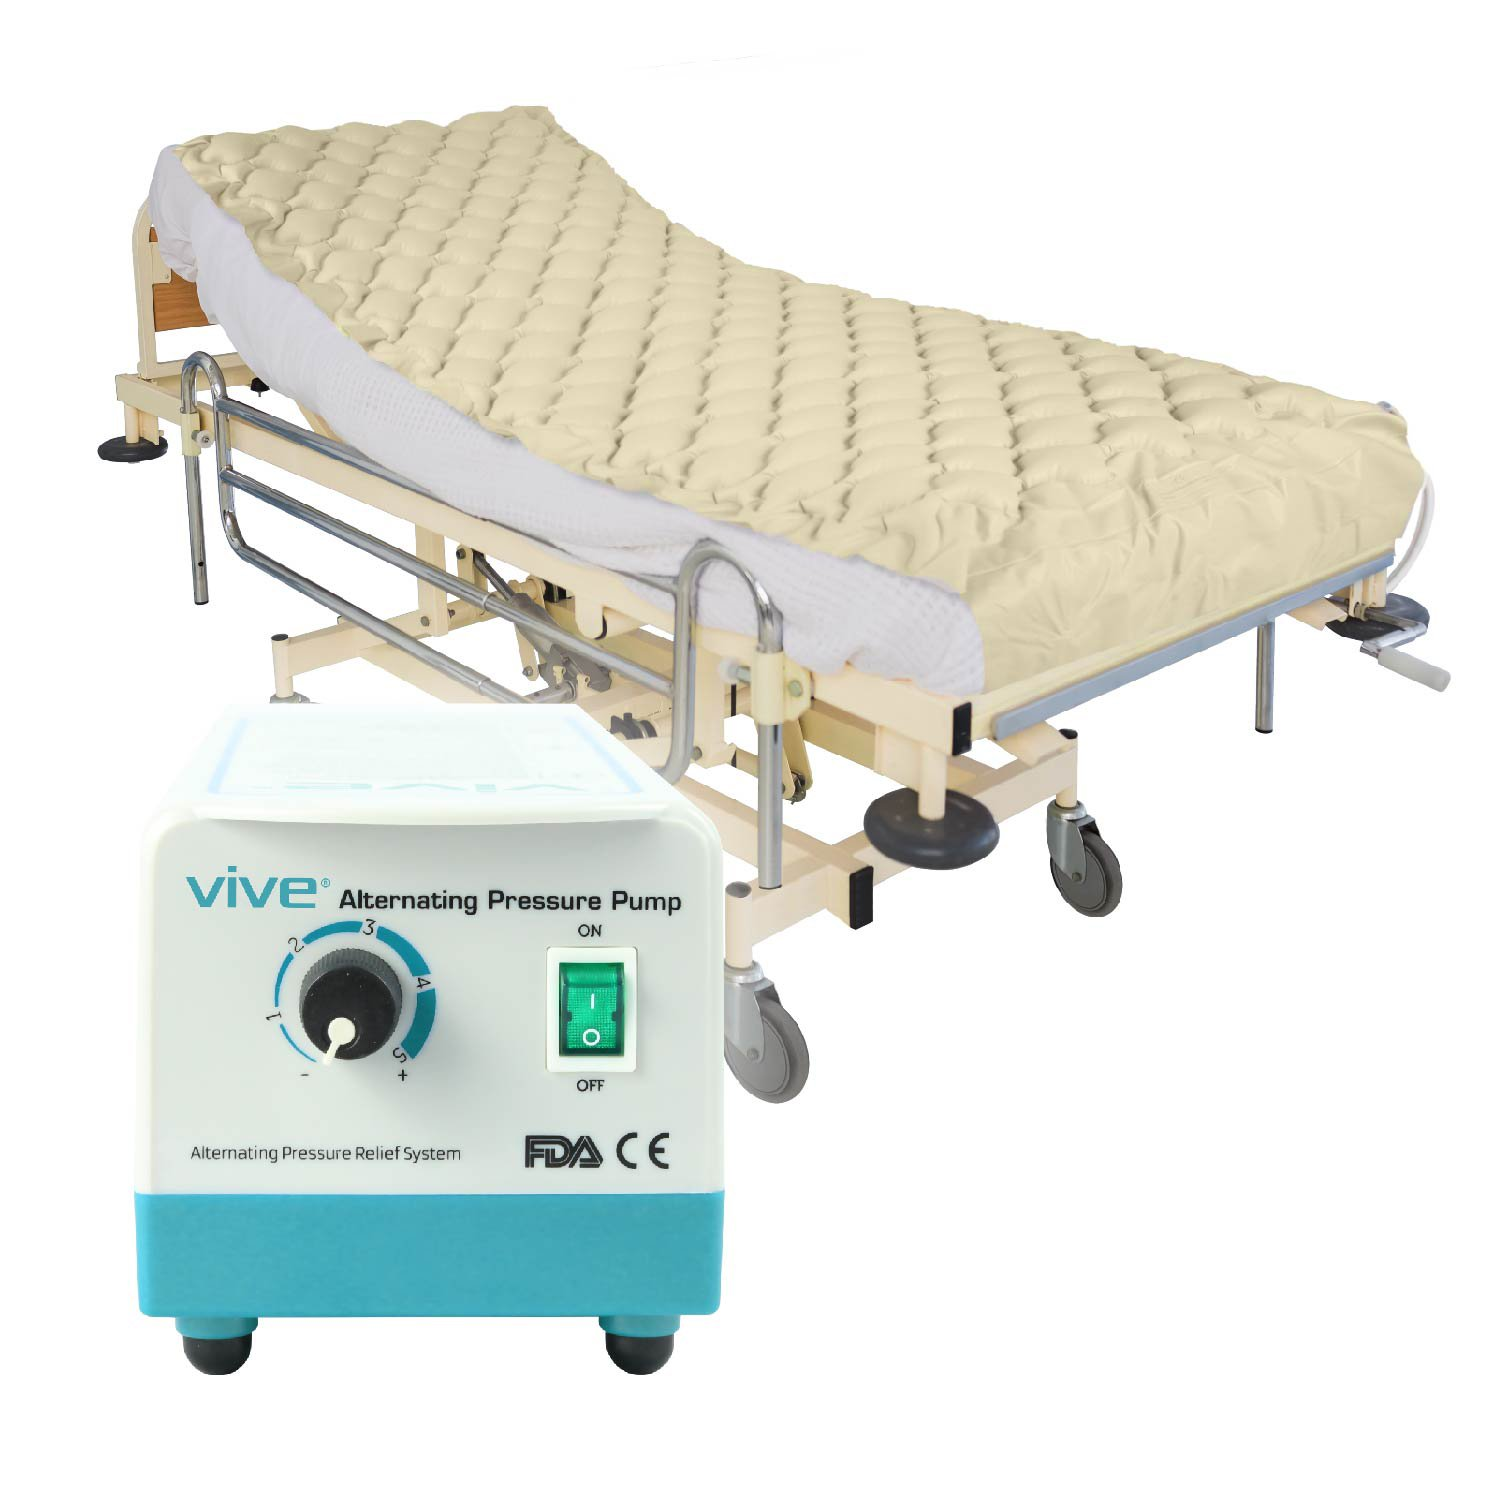 Vive Alternating Pressure Mattress - Includes Electric Pump System and Mattress Pad Cover - Quiet, Inflatable Bed Air Topper for Pressure Ulcer and Pressure ...